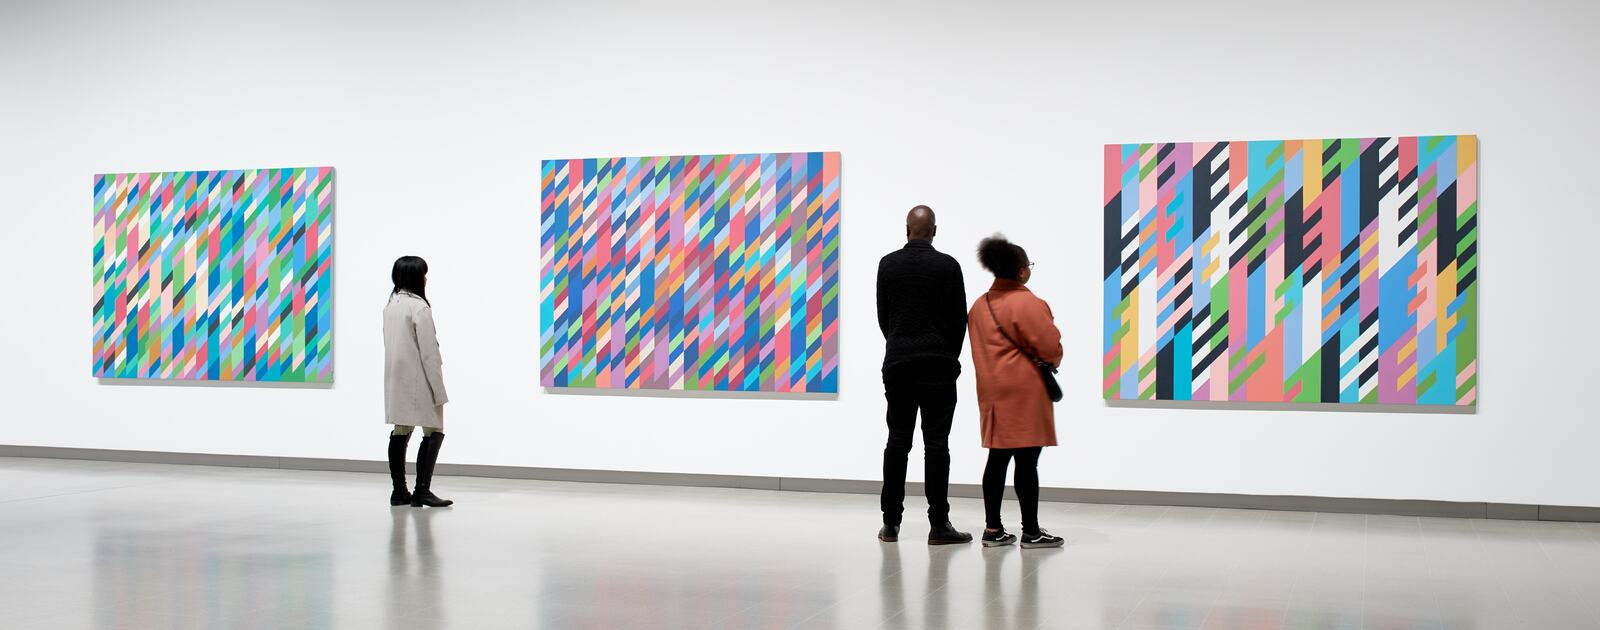 Installation view of Bridget Riley at Hayward Gallery 2019 © Bridget Riley 2019 Photo Stephen White & Co.